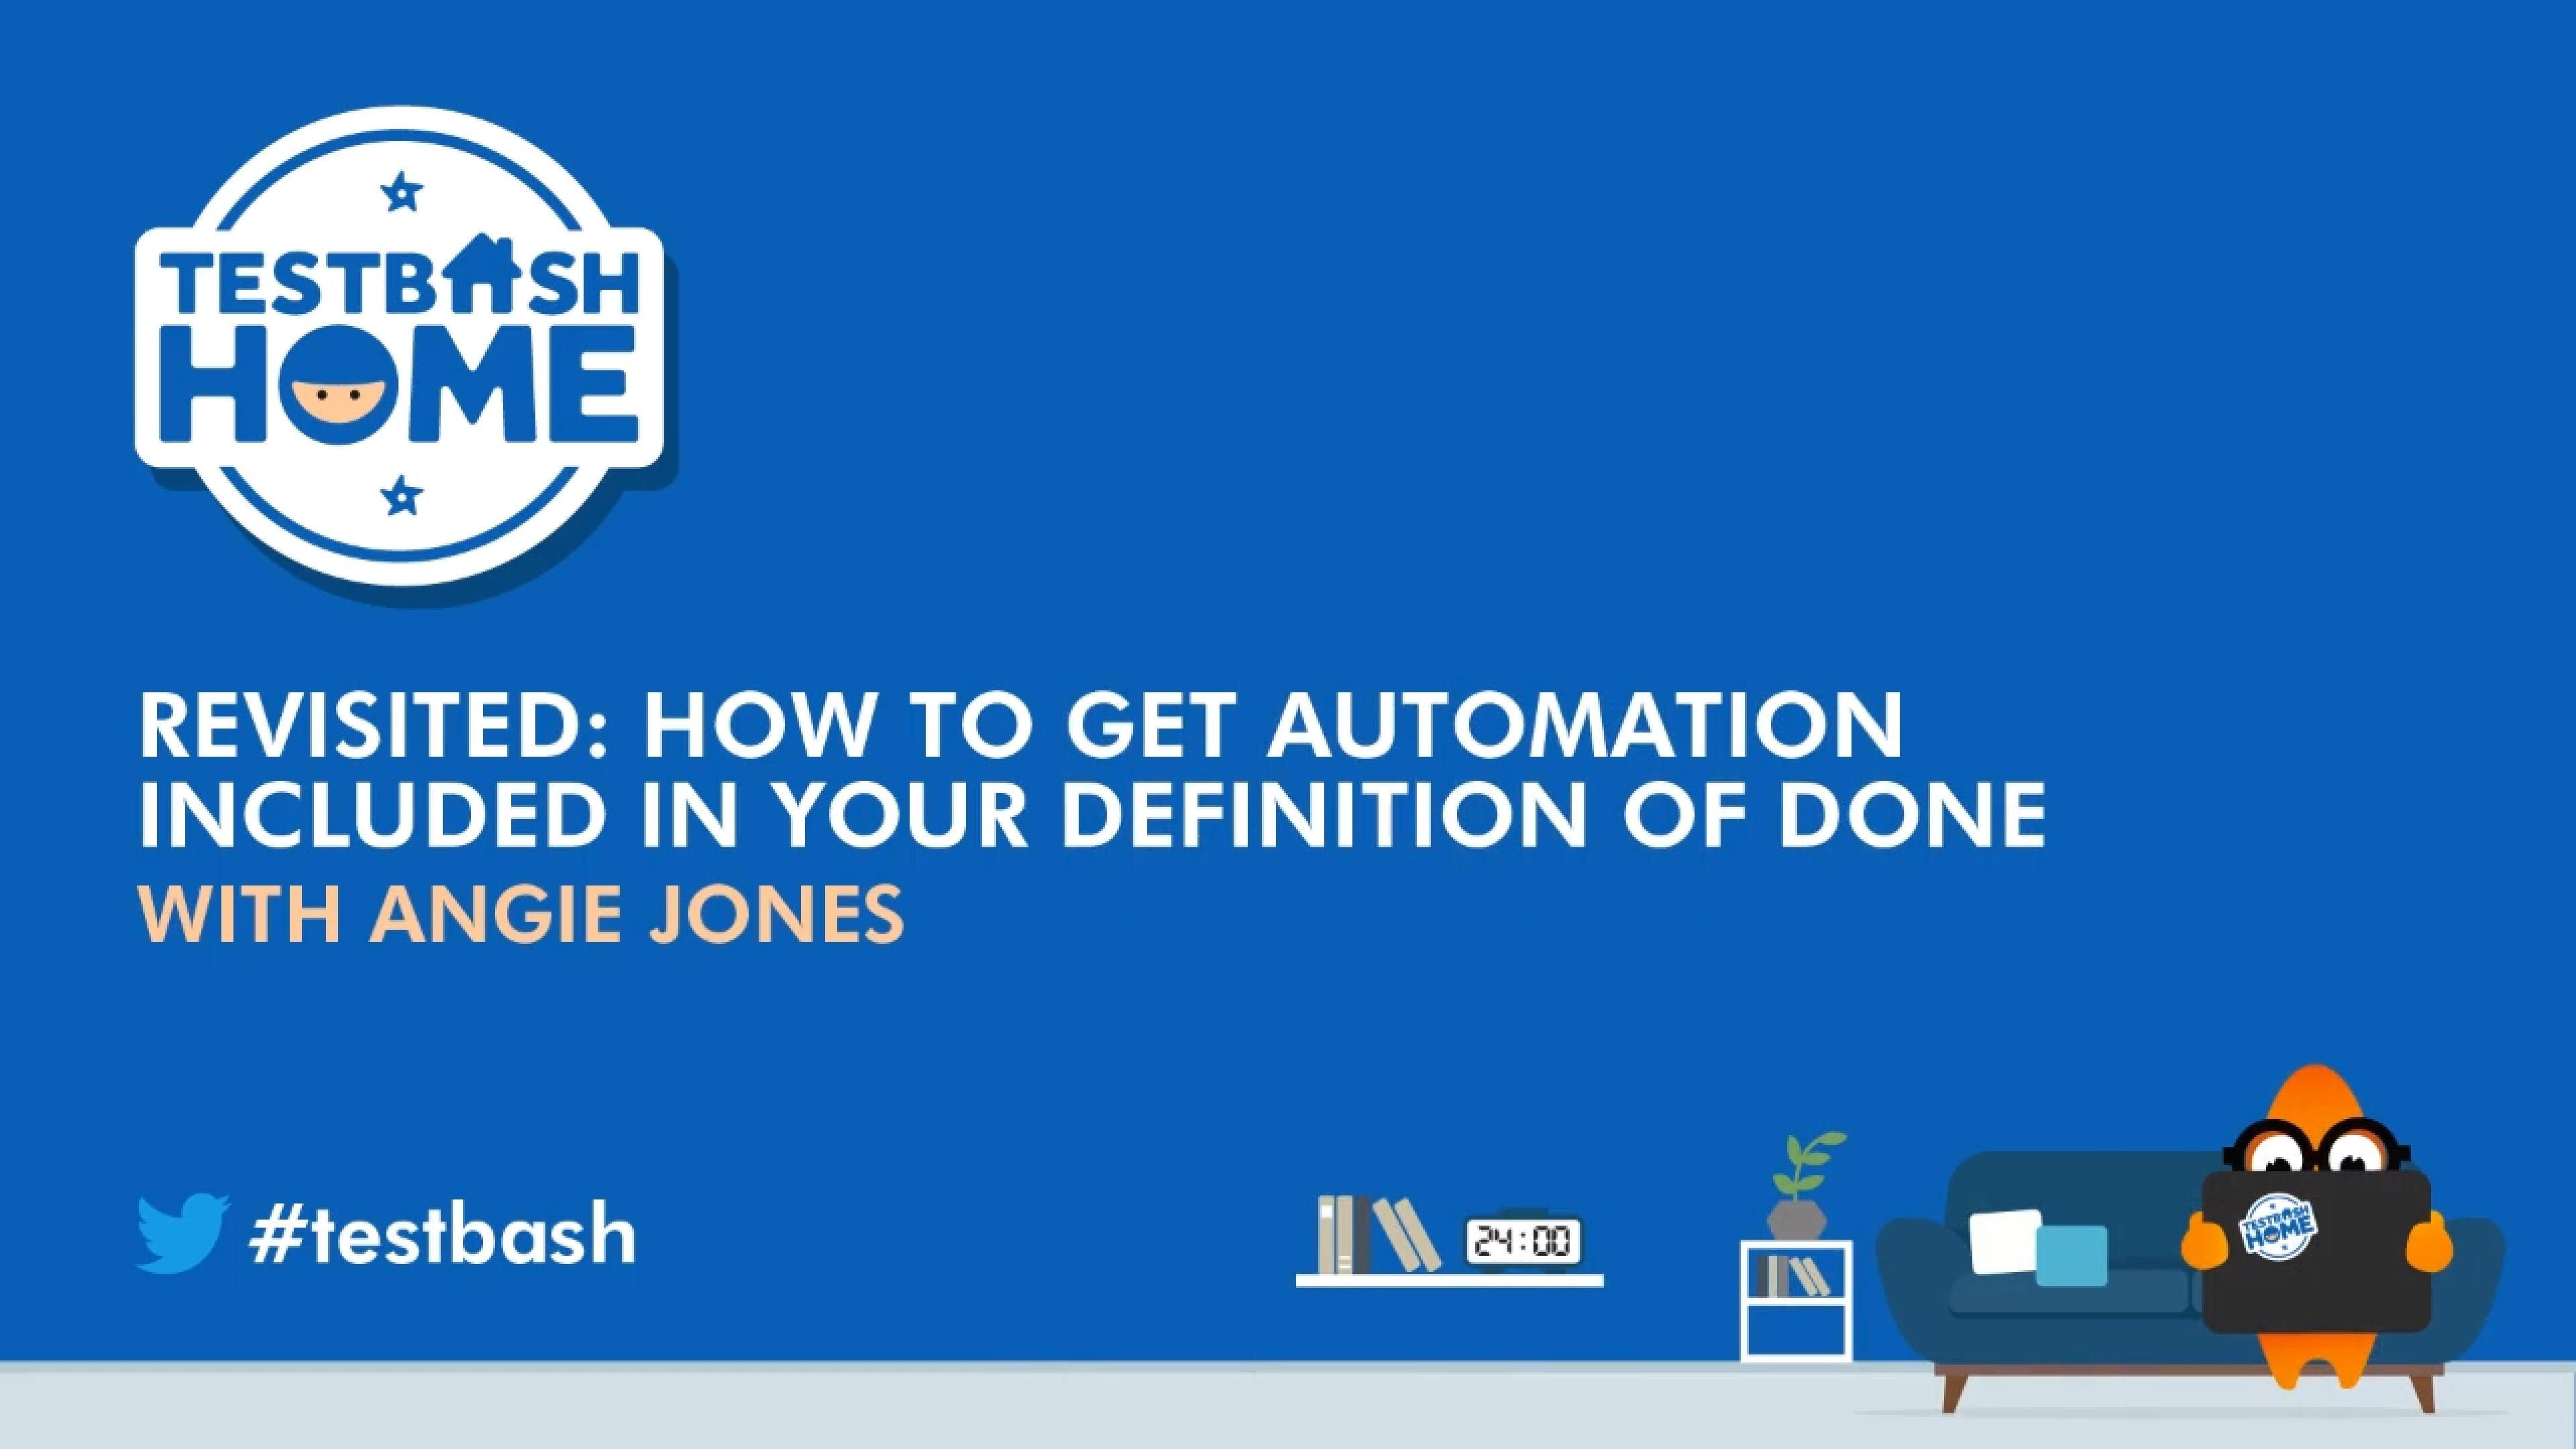 Revisited: How to Get Automation Included in Your Definition of Done - Angie Jones